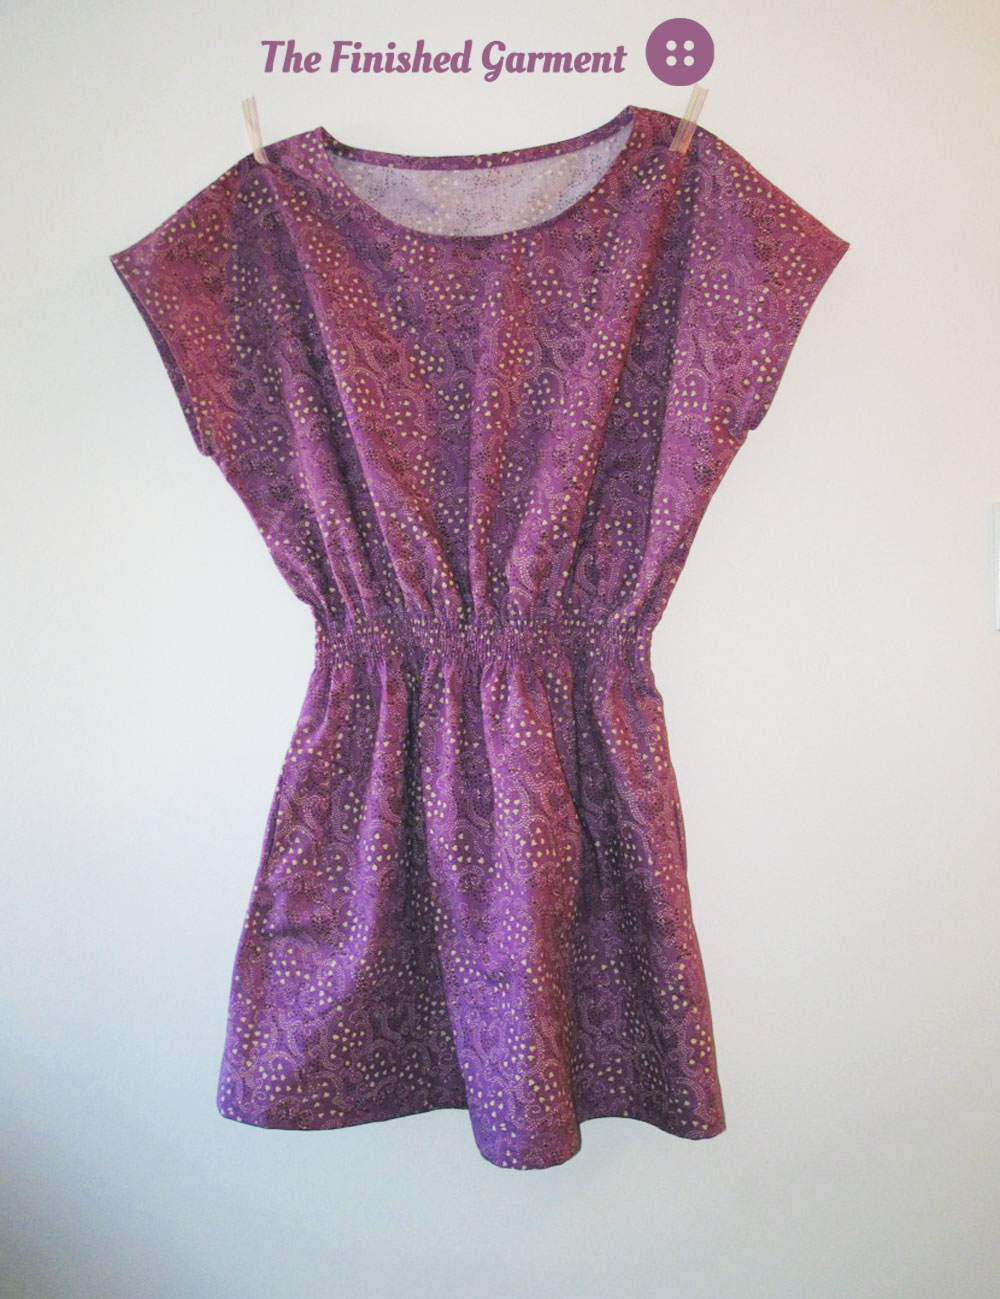 A Staple Dress in Radiant Orchid